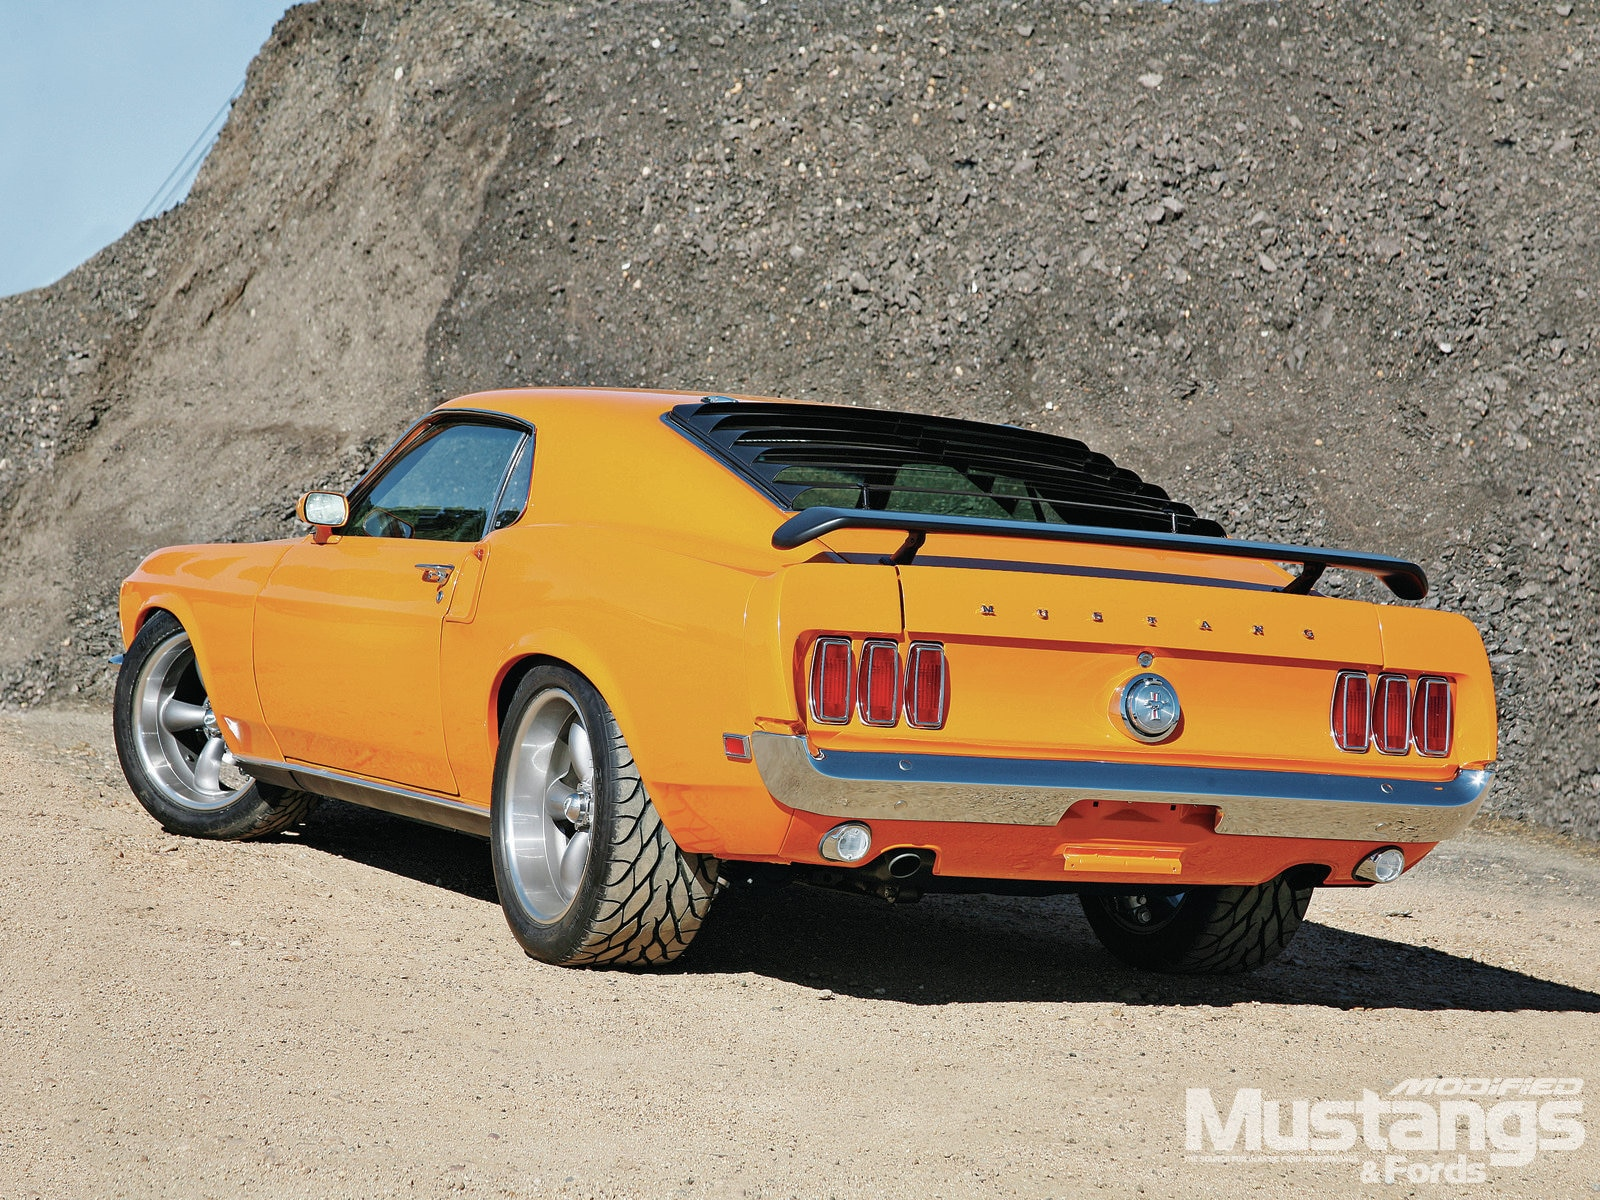 Mdmp 1206 003 1969 Mustang Mach 1 Always Grabber Orange